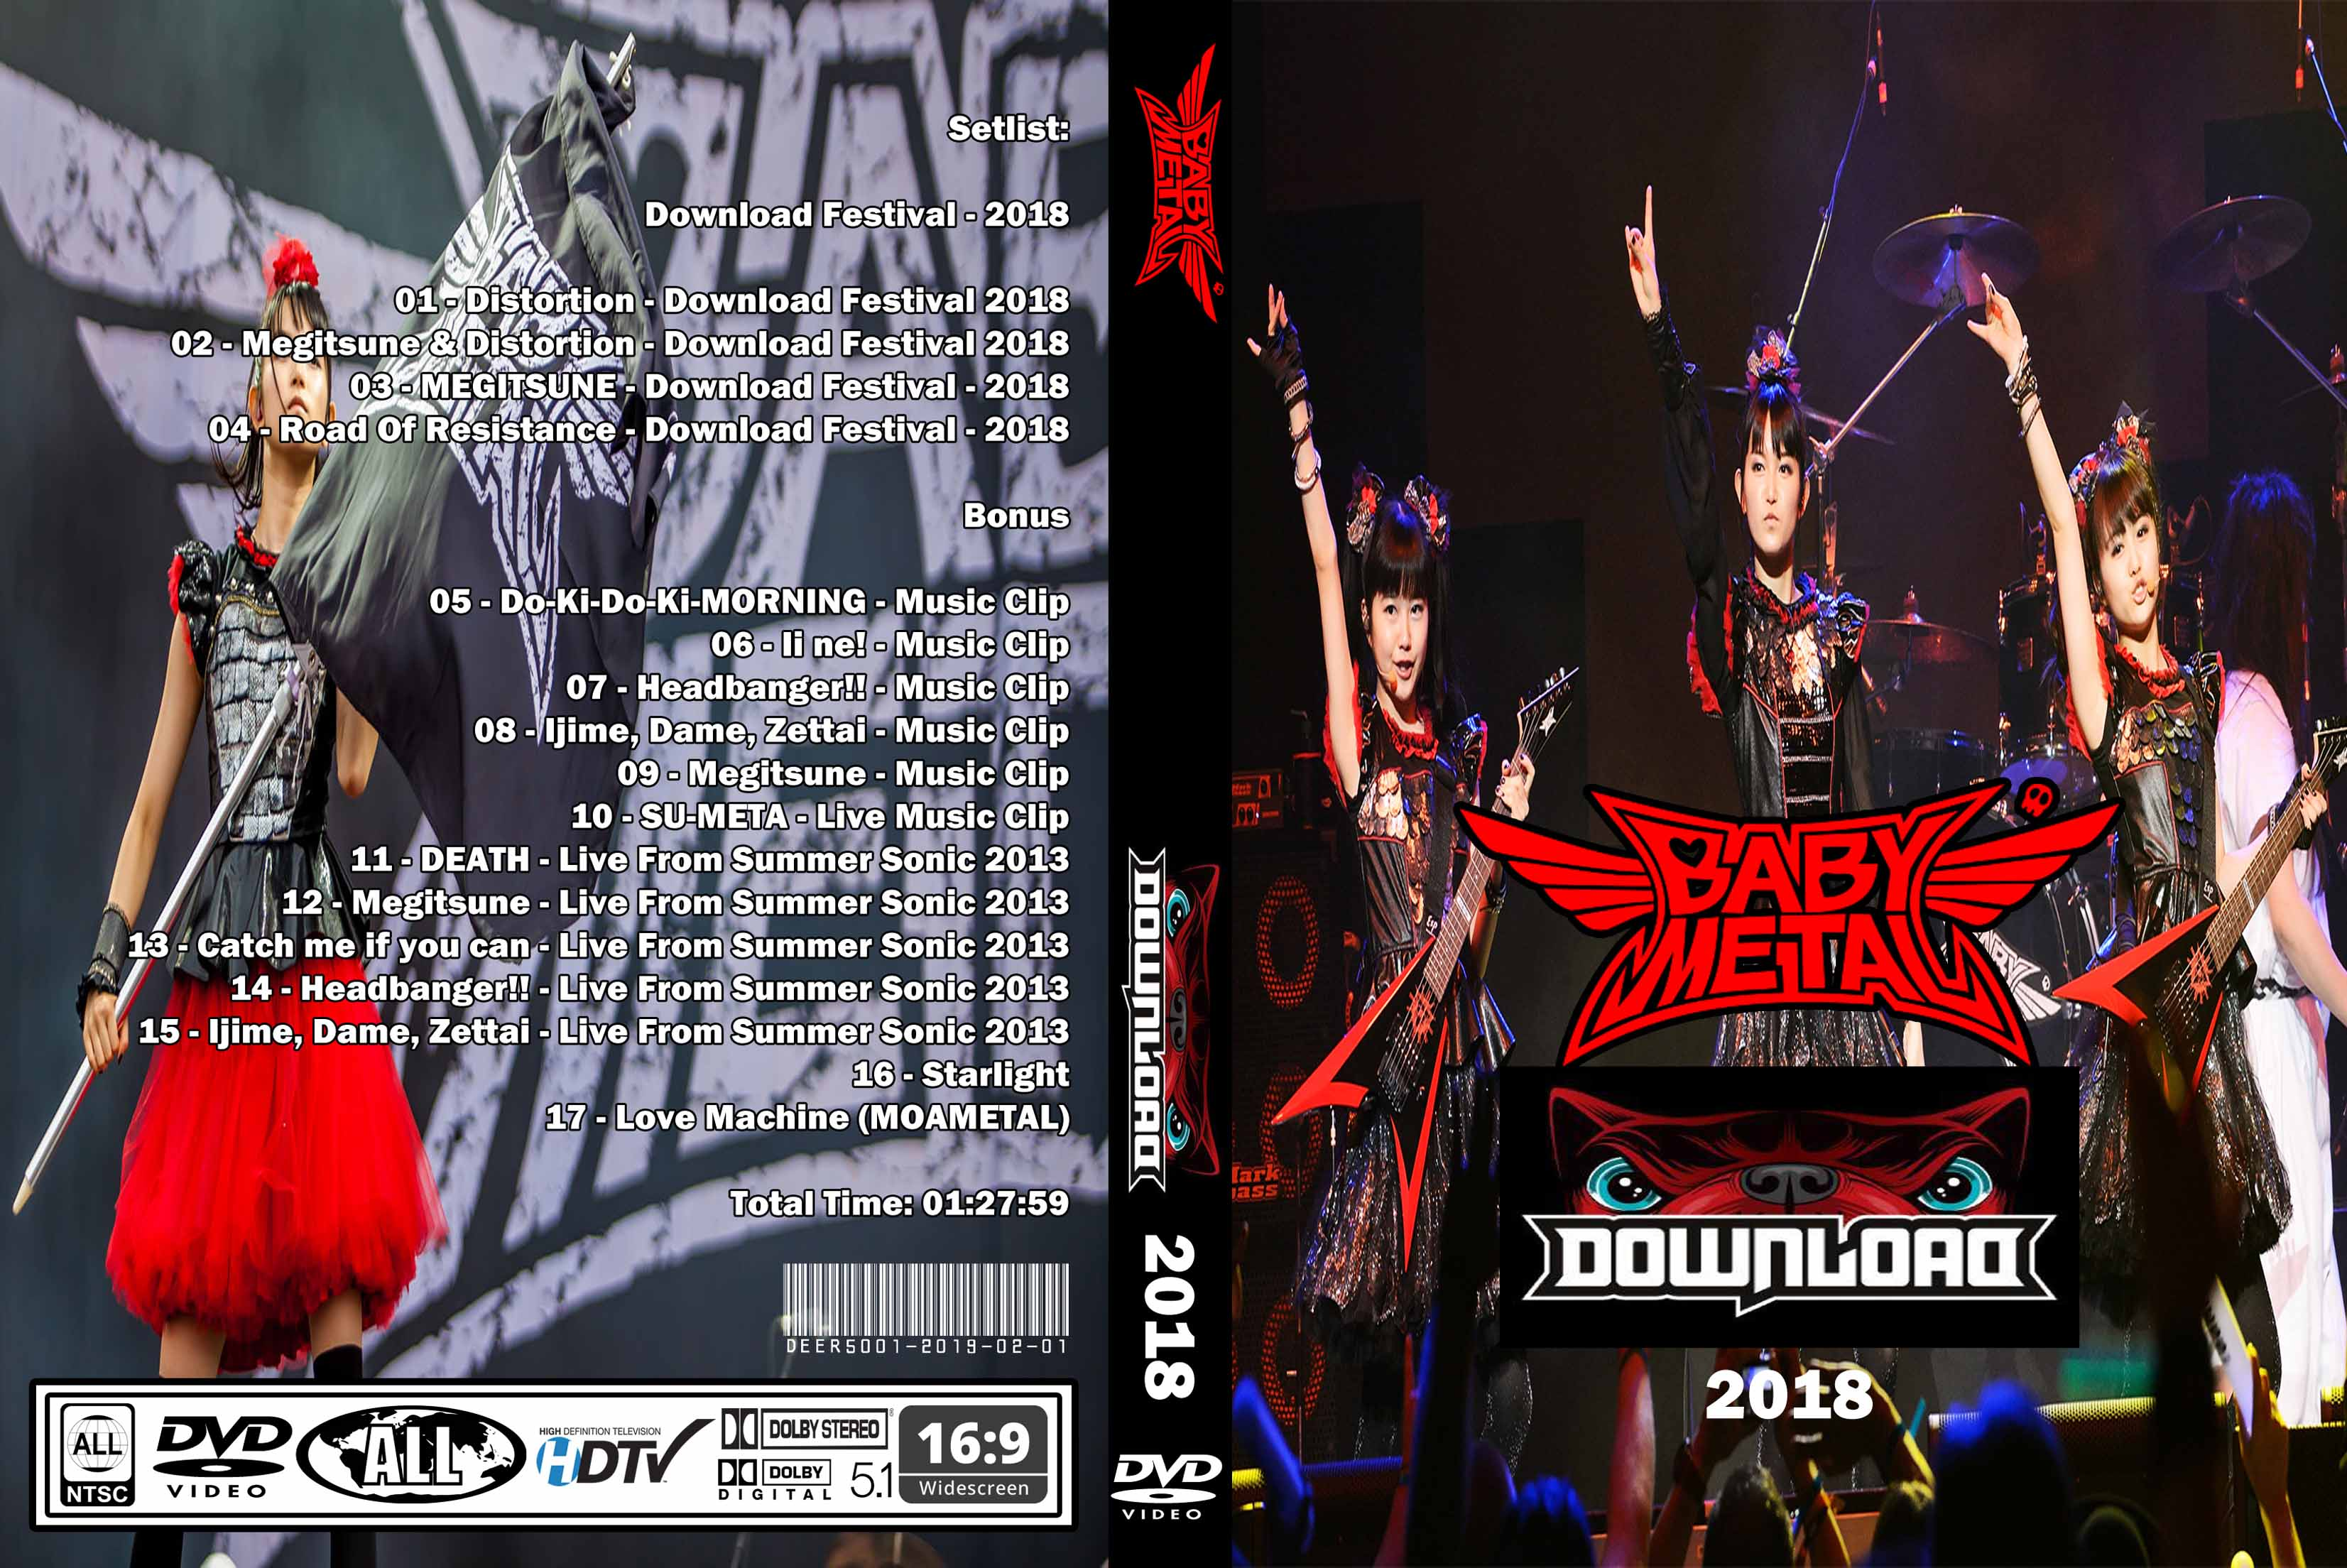 BabyMetal - Live Download Festival 2018 DVD